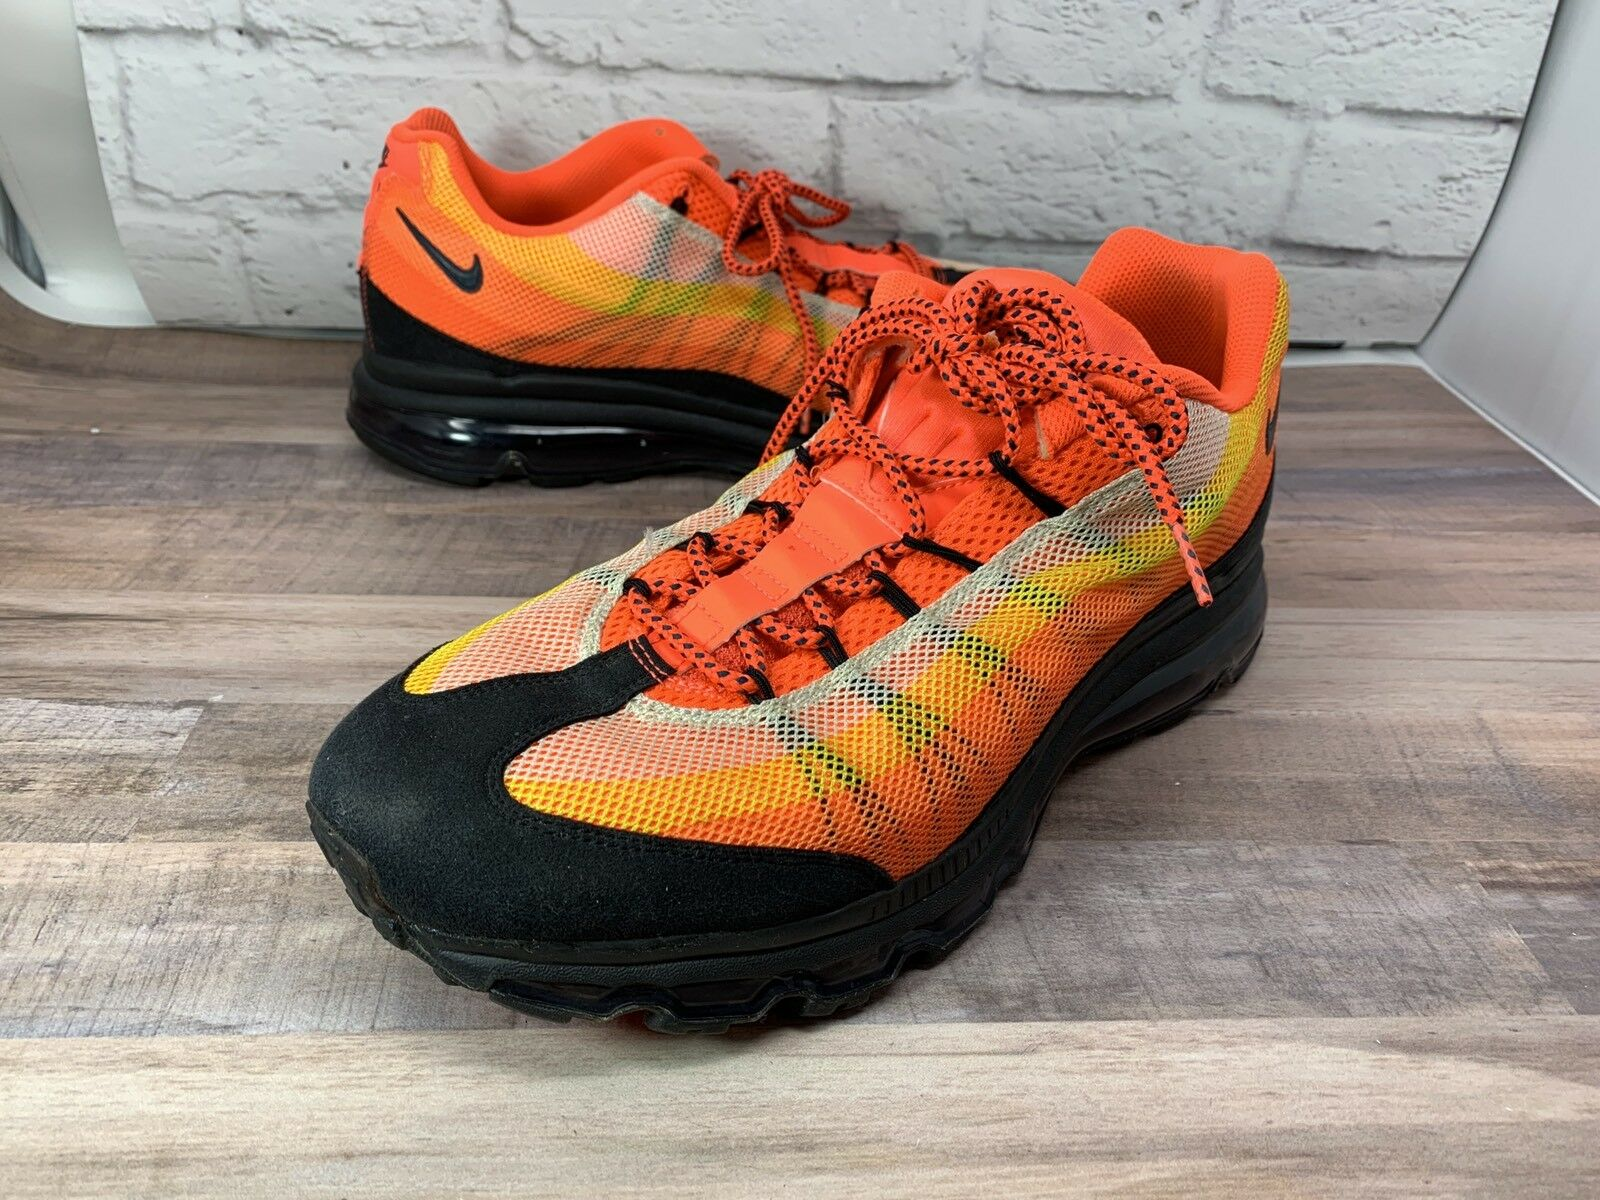 RARE   NIKE AIR MAX Sneakers Sneakers Sneakers   Black orange Yellow  554715 838 Mens Sz 13 634d15